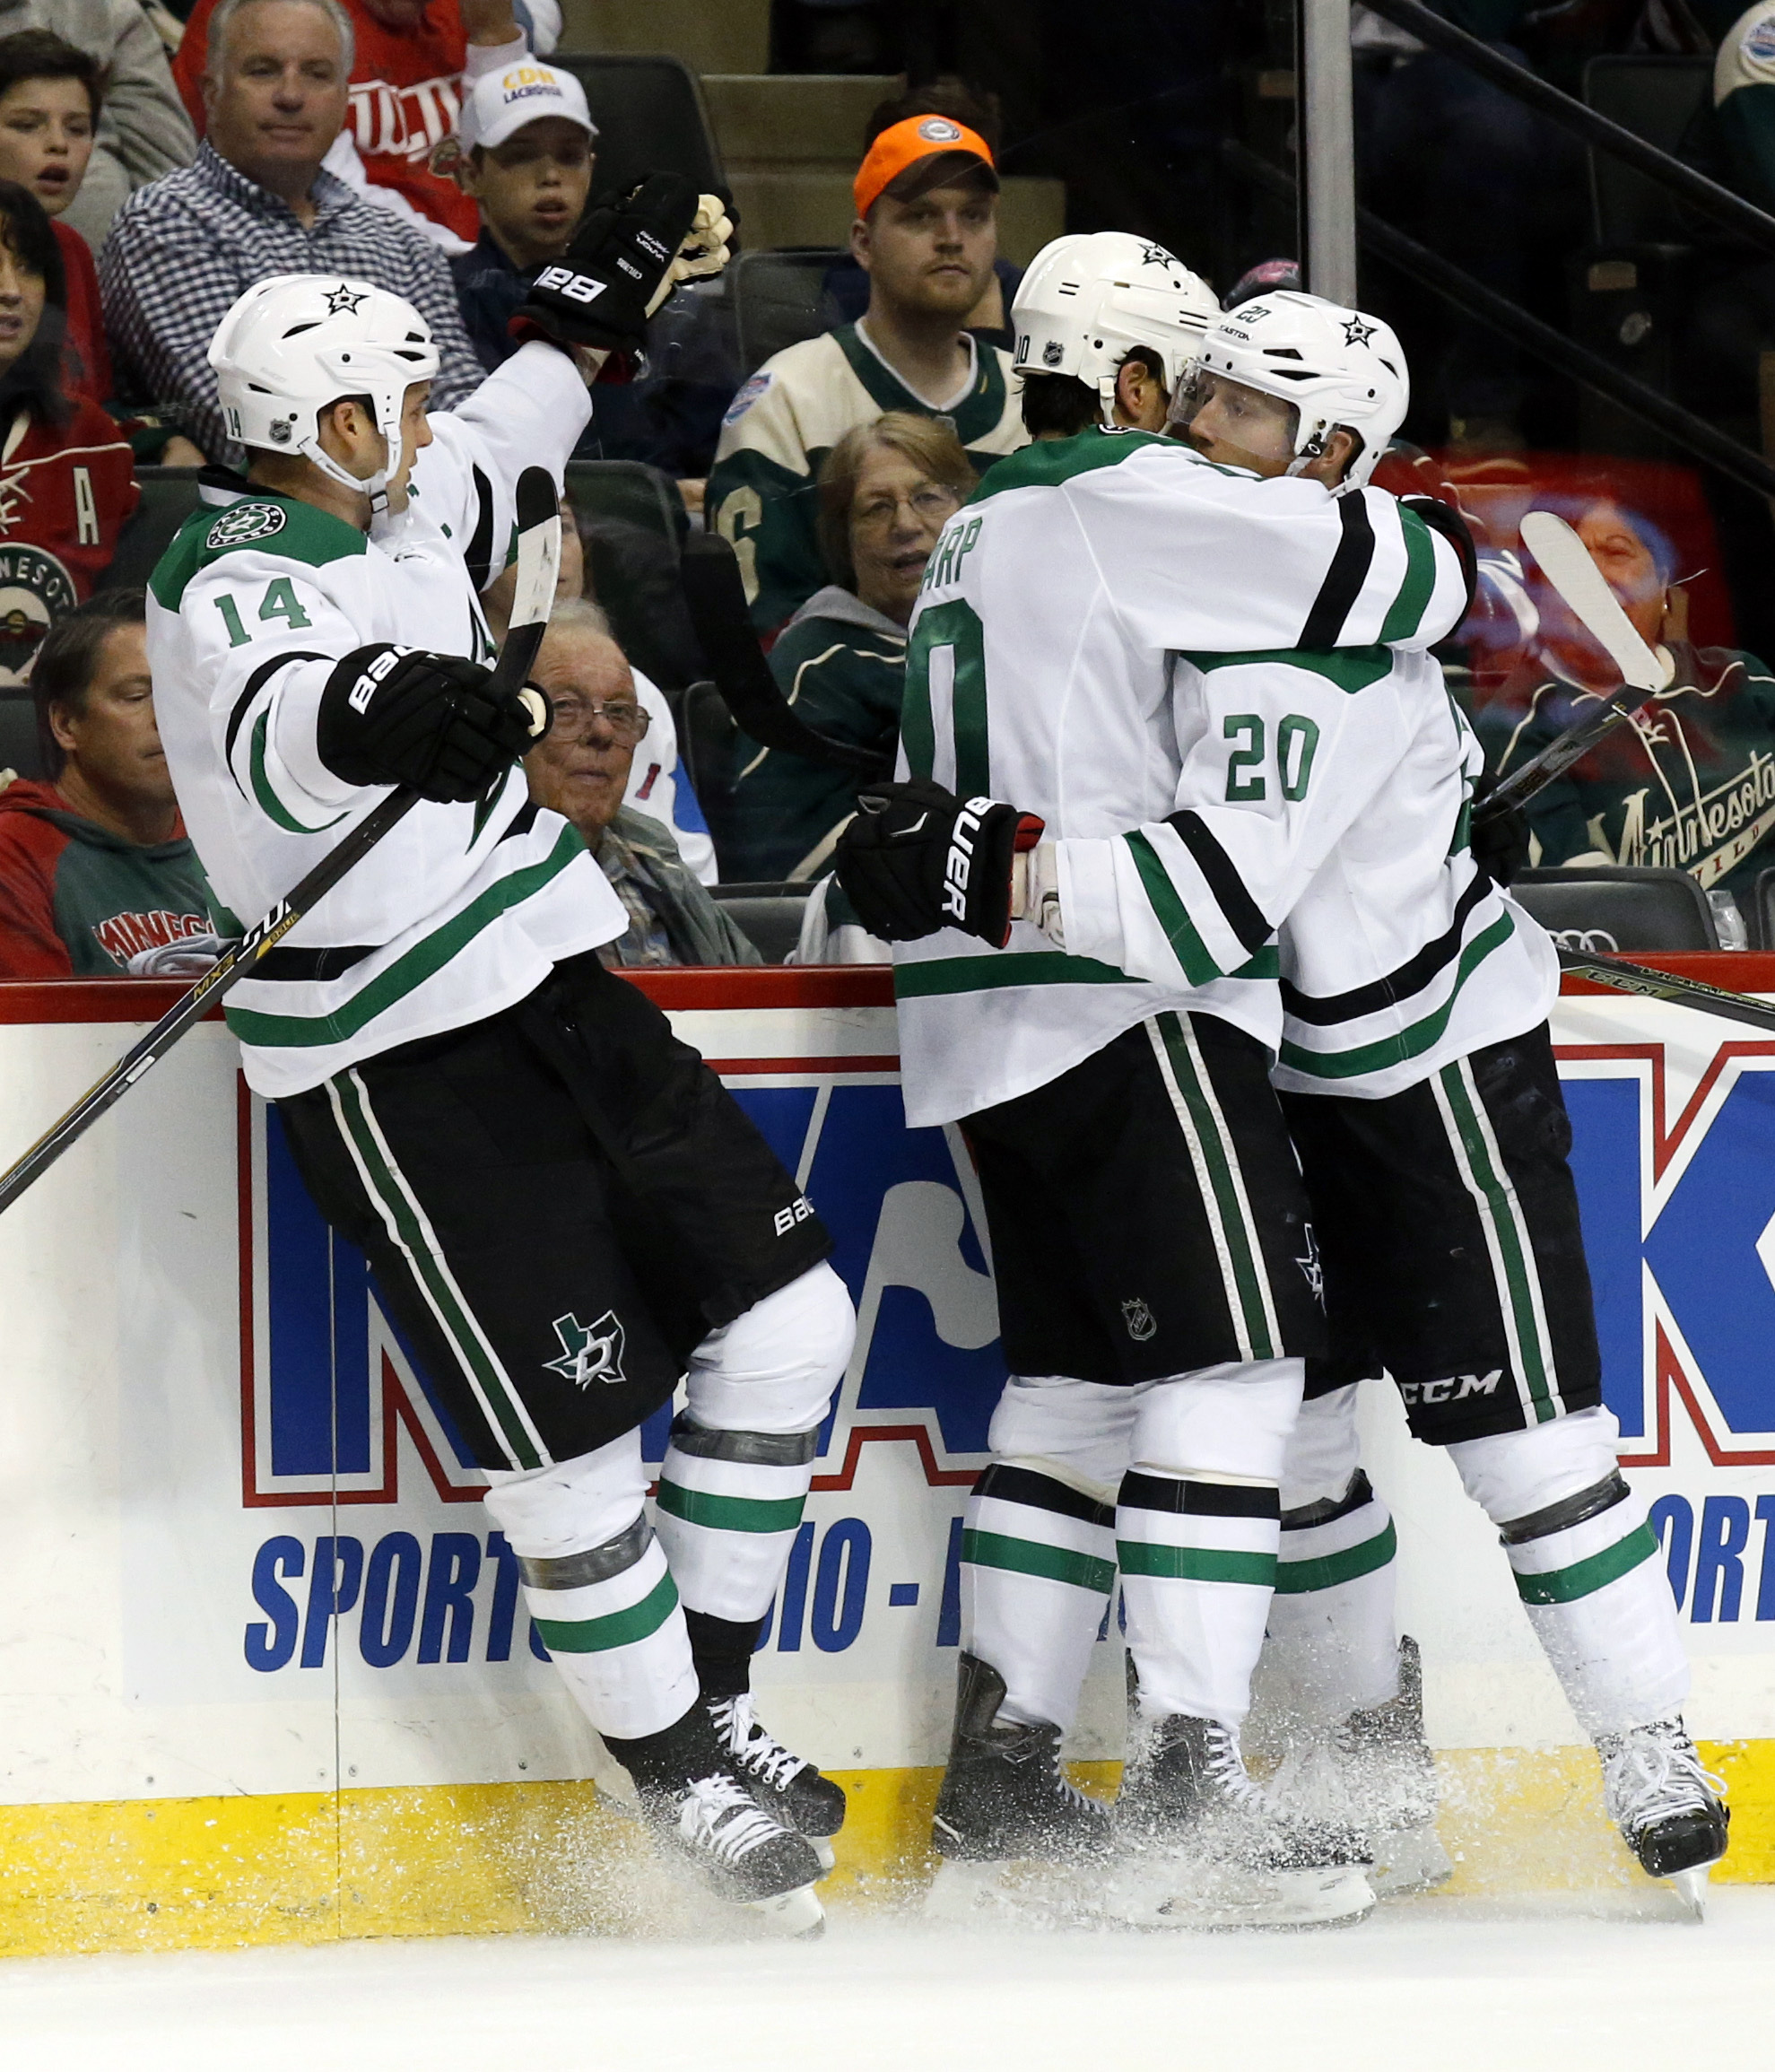 Dallas Stars left wing Patrick Sharp, center, celebrates with teammates  Cody Eakin (20) and Jamie Benn (14) after scoring on Minnesota Wild goalie Devan Dubnyk during the first period of Game 6 in the first round of the NHL Stanley Cup hockey playoffs in